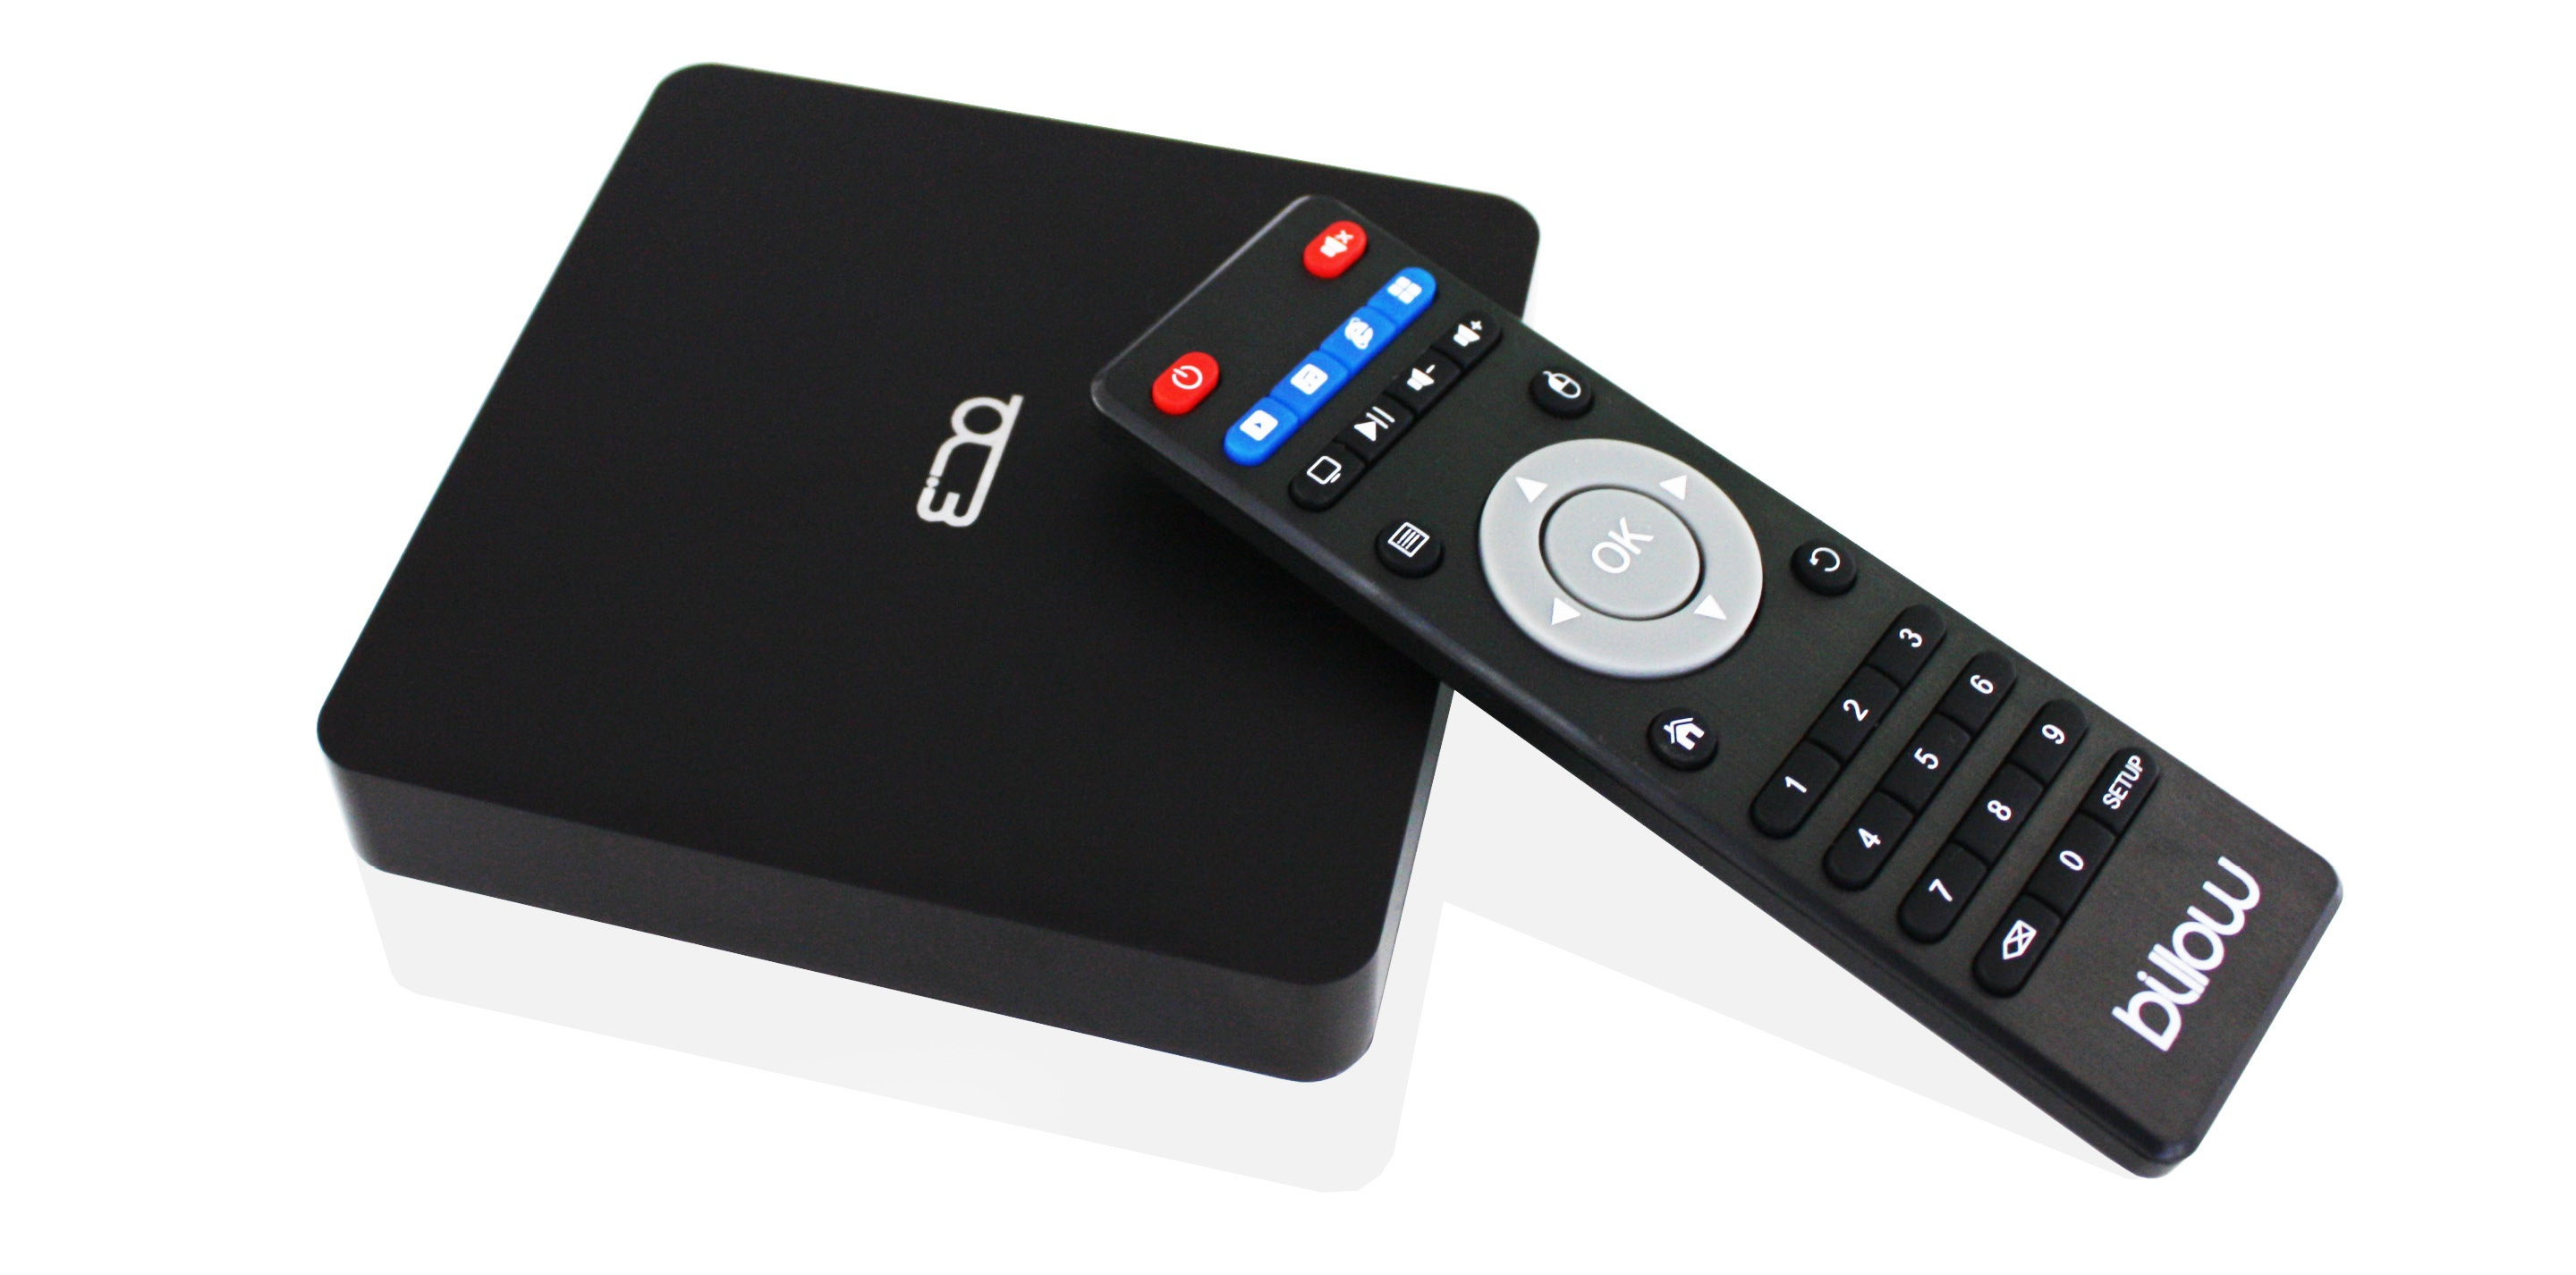 Billow Android TV MD08v2 4K HD, Quad-core 2GHz,